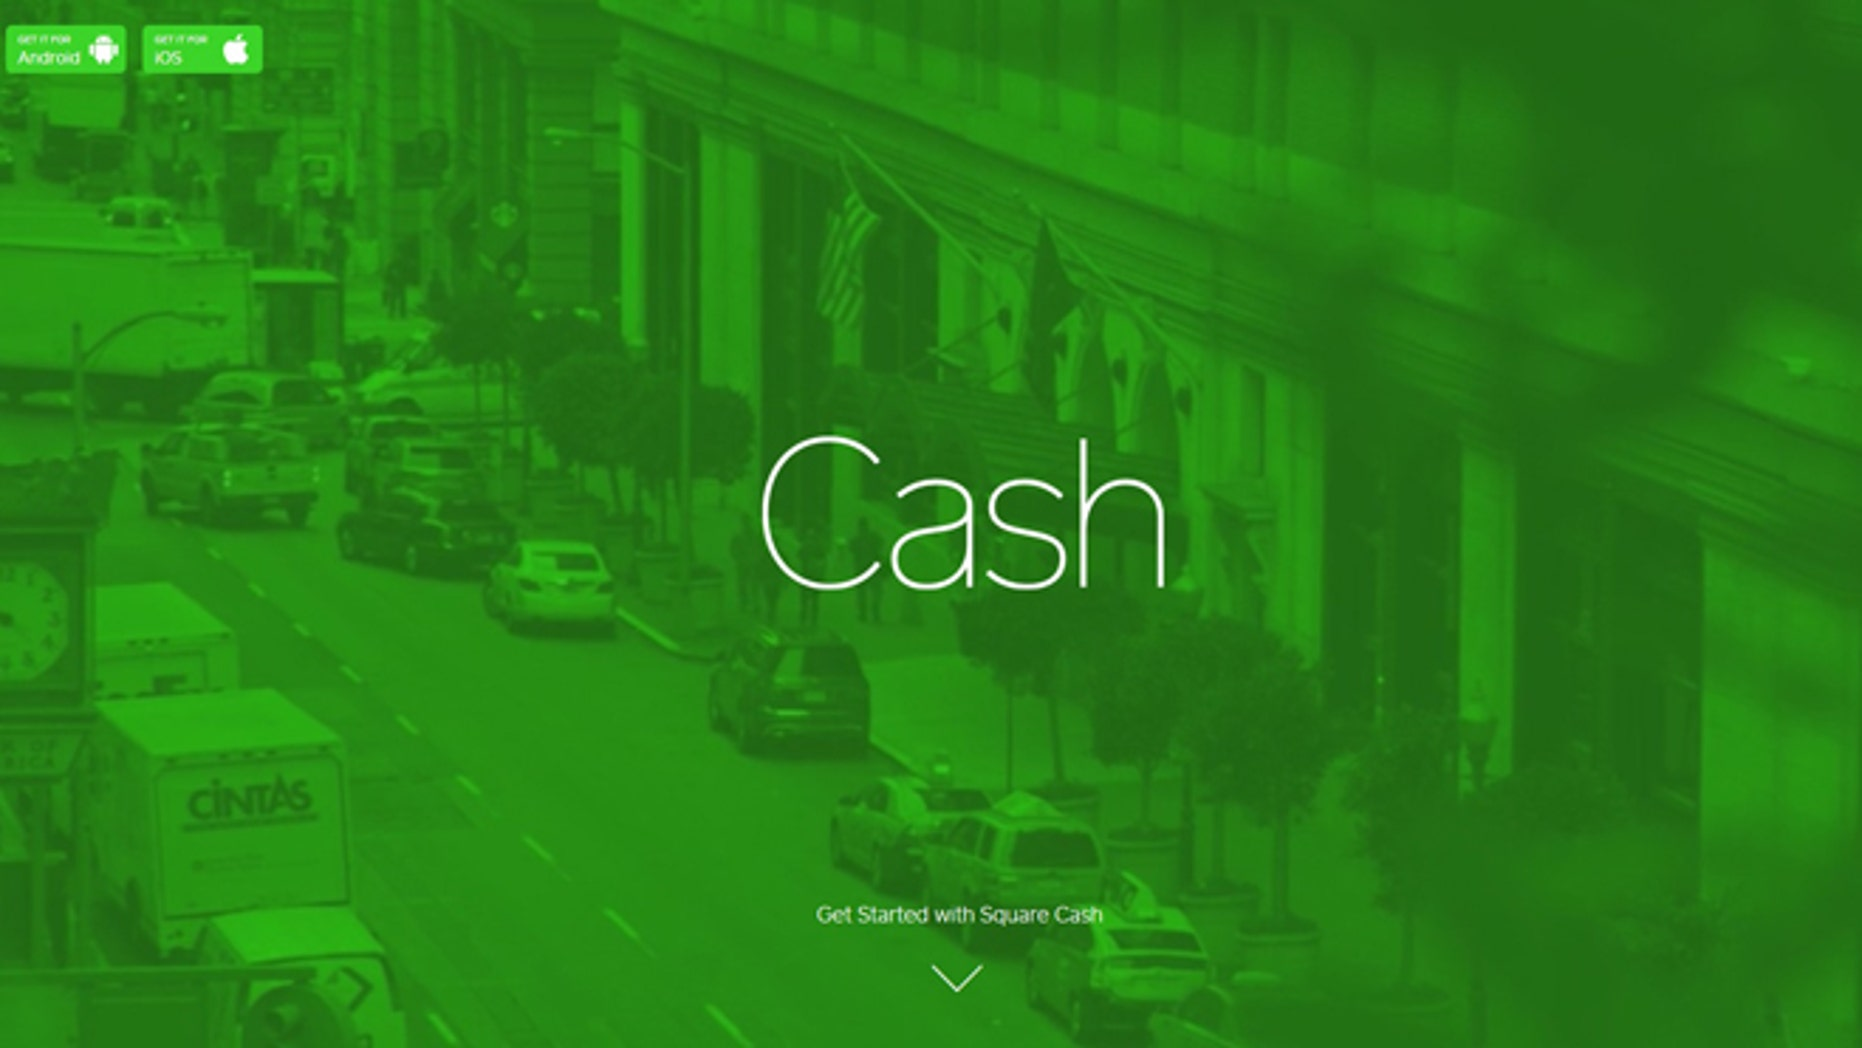 A screenshot of a website advertising the new service Square Cash, which lets you easily send money to anyone with an email address -- for free.